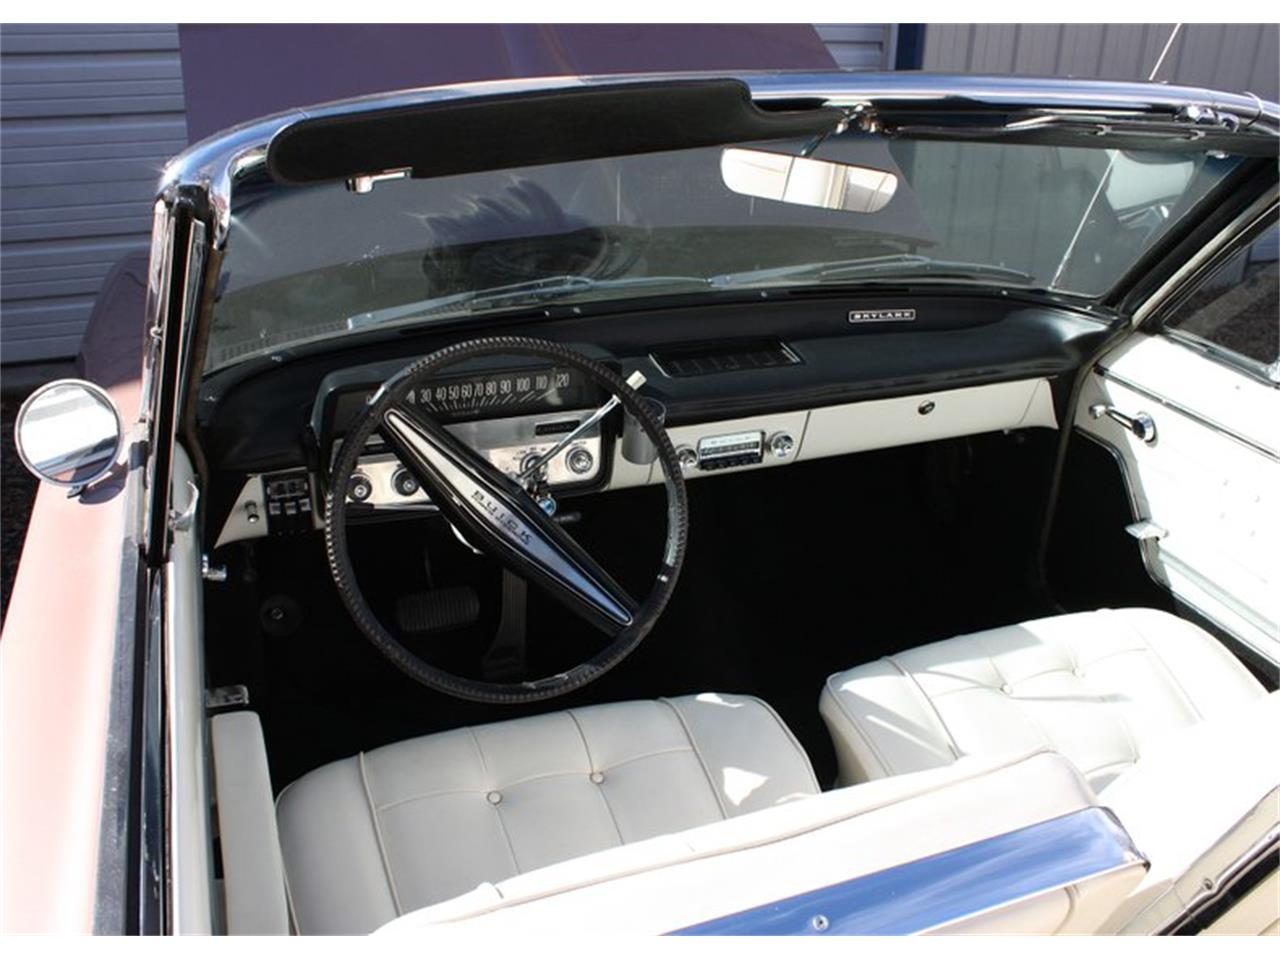 Large Picture of 1962 Buick Skylark Auction Vehicle Offered by Leake Auction Company - PDAZ